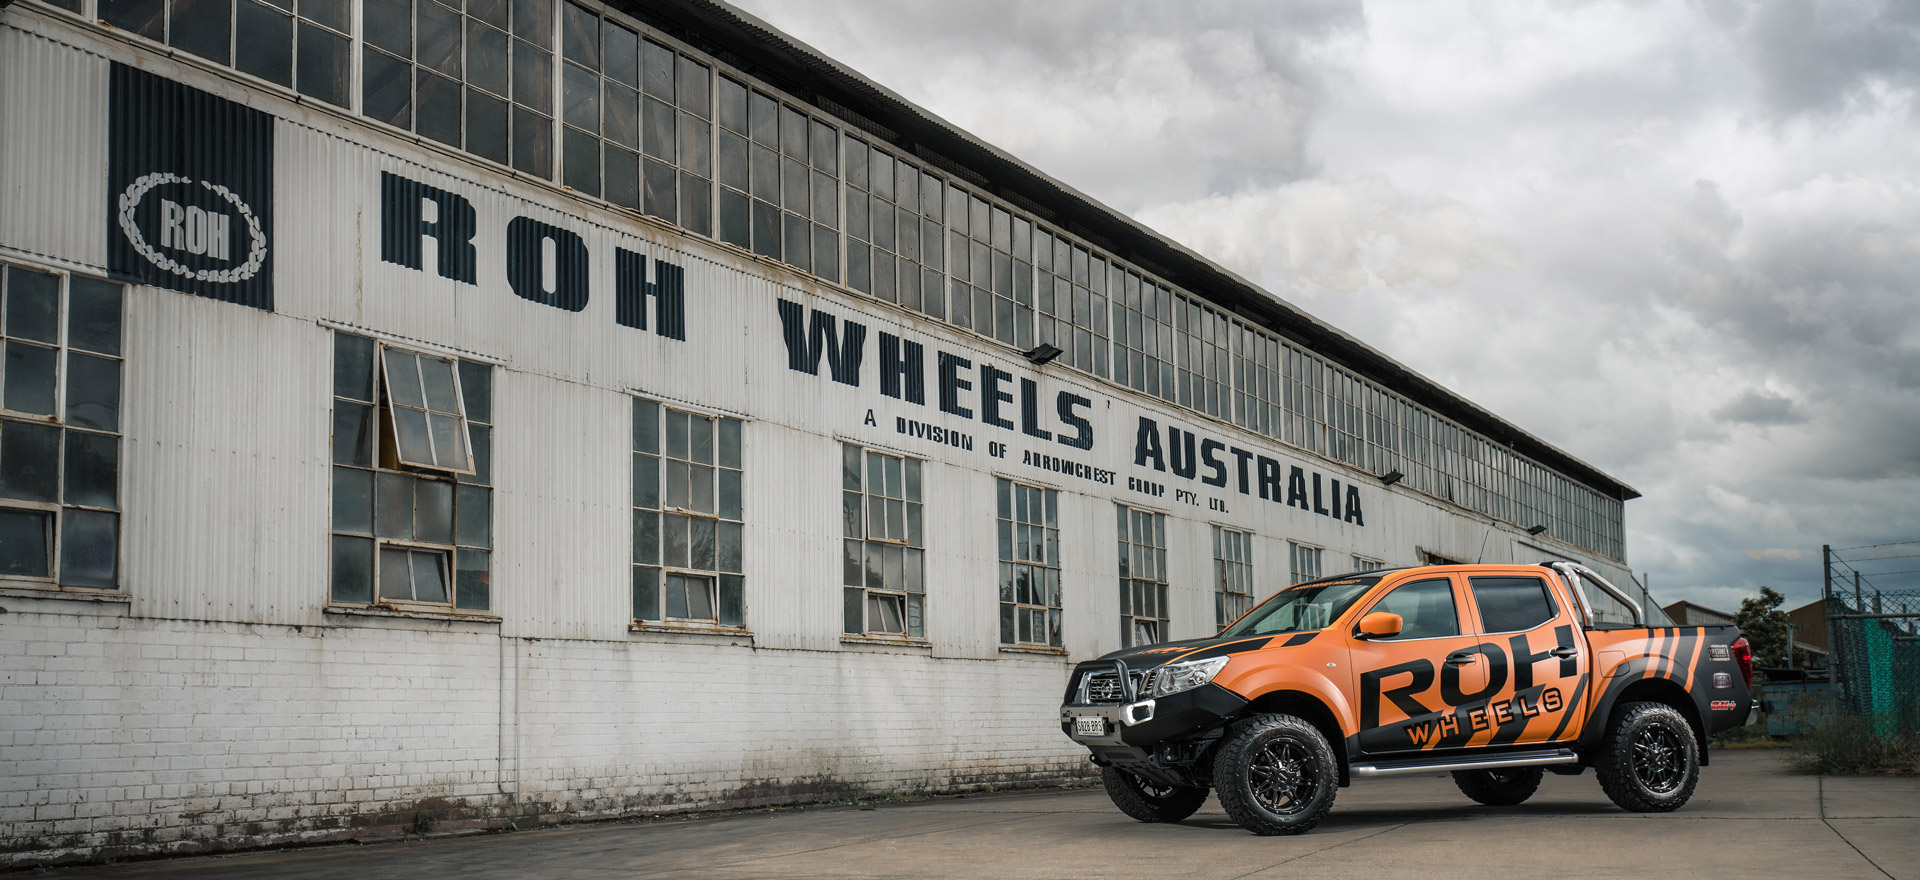 ROH NP300 Navara in front of ROH Warehouse with Assassin wheels